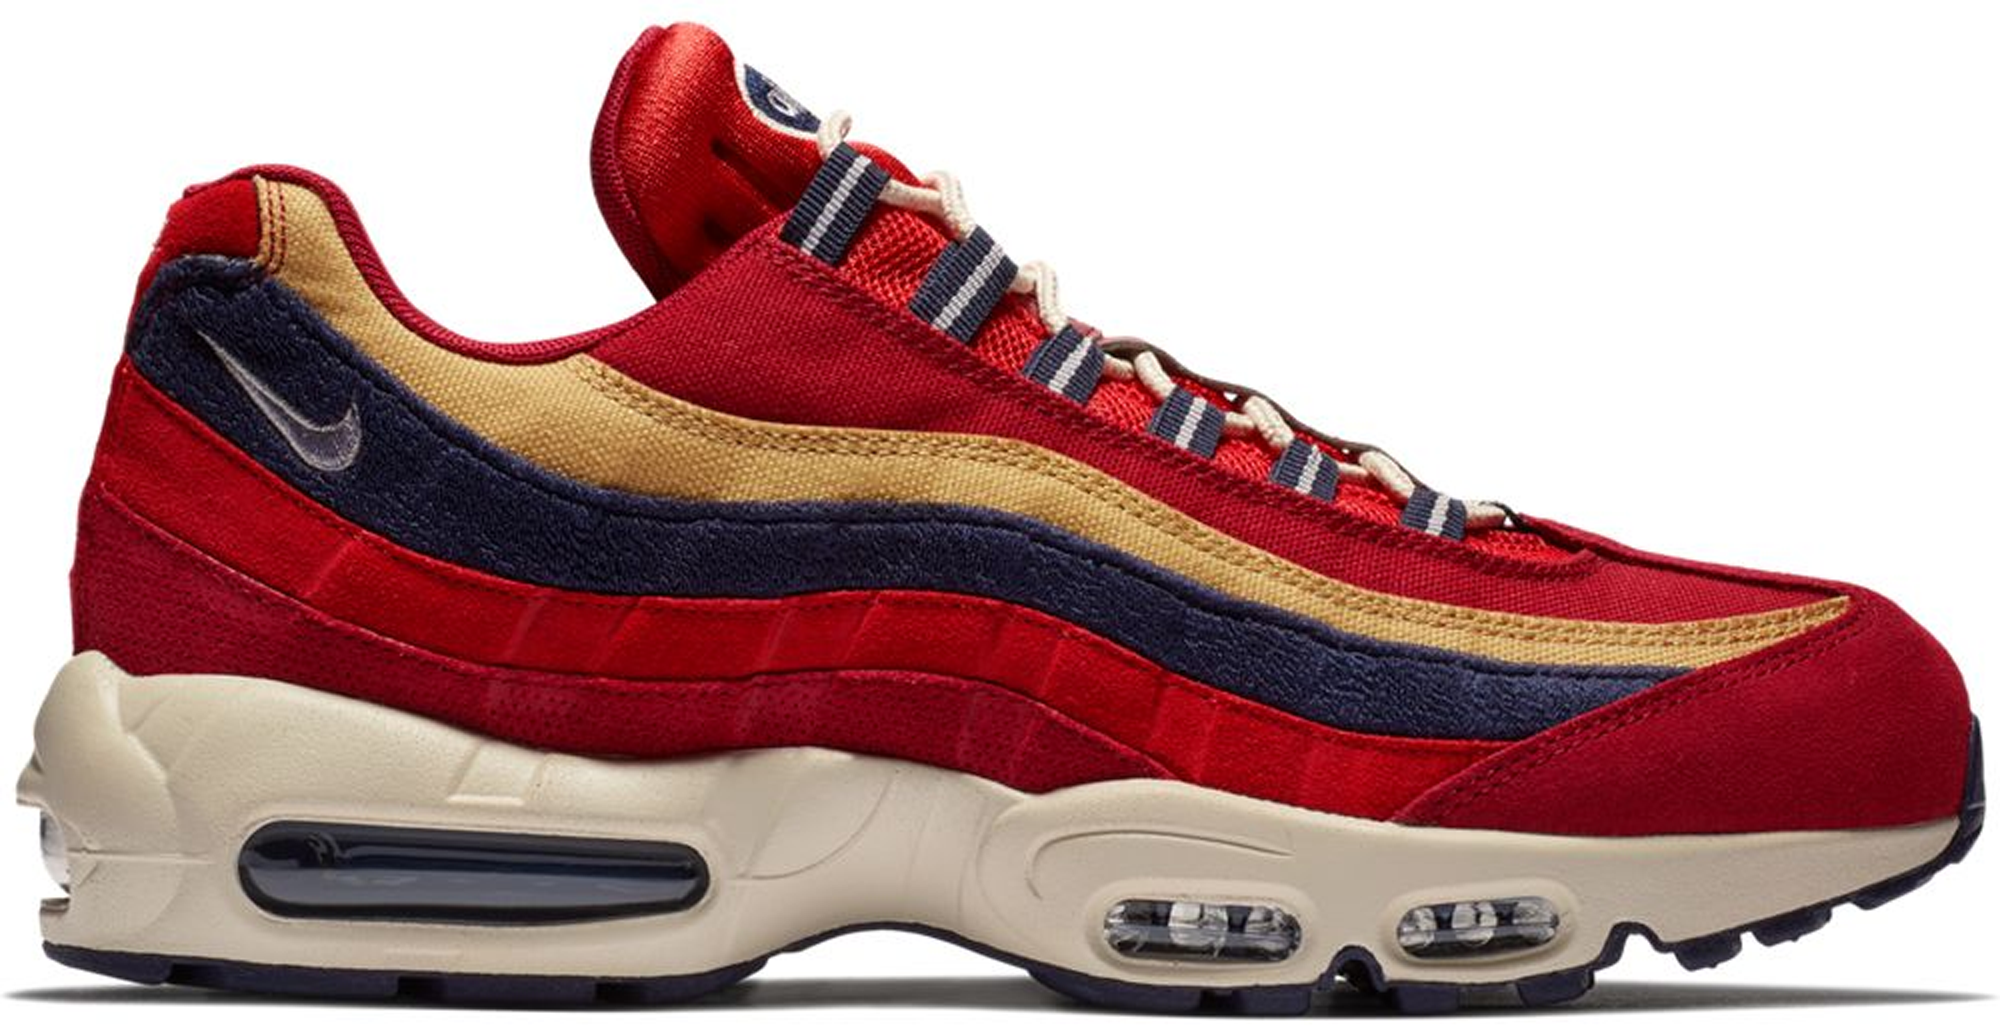 new arrivals da5fc 2f0ad store air max 95 red crush wheat gold b2448 b87c4